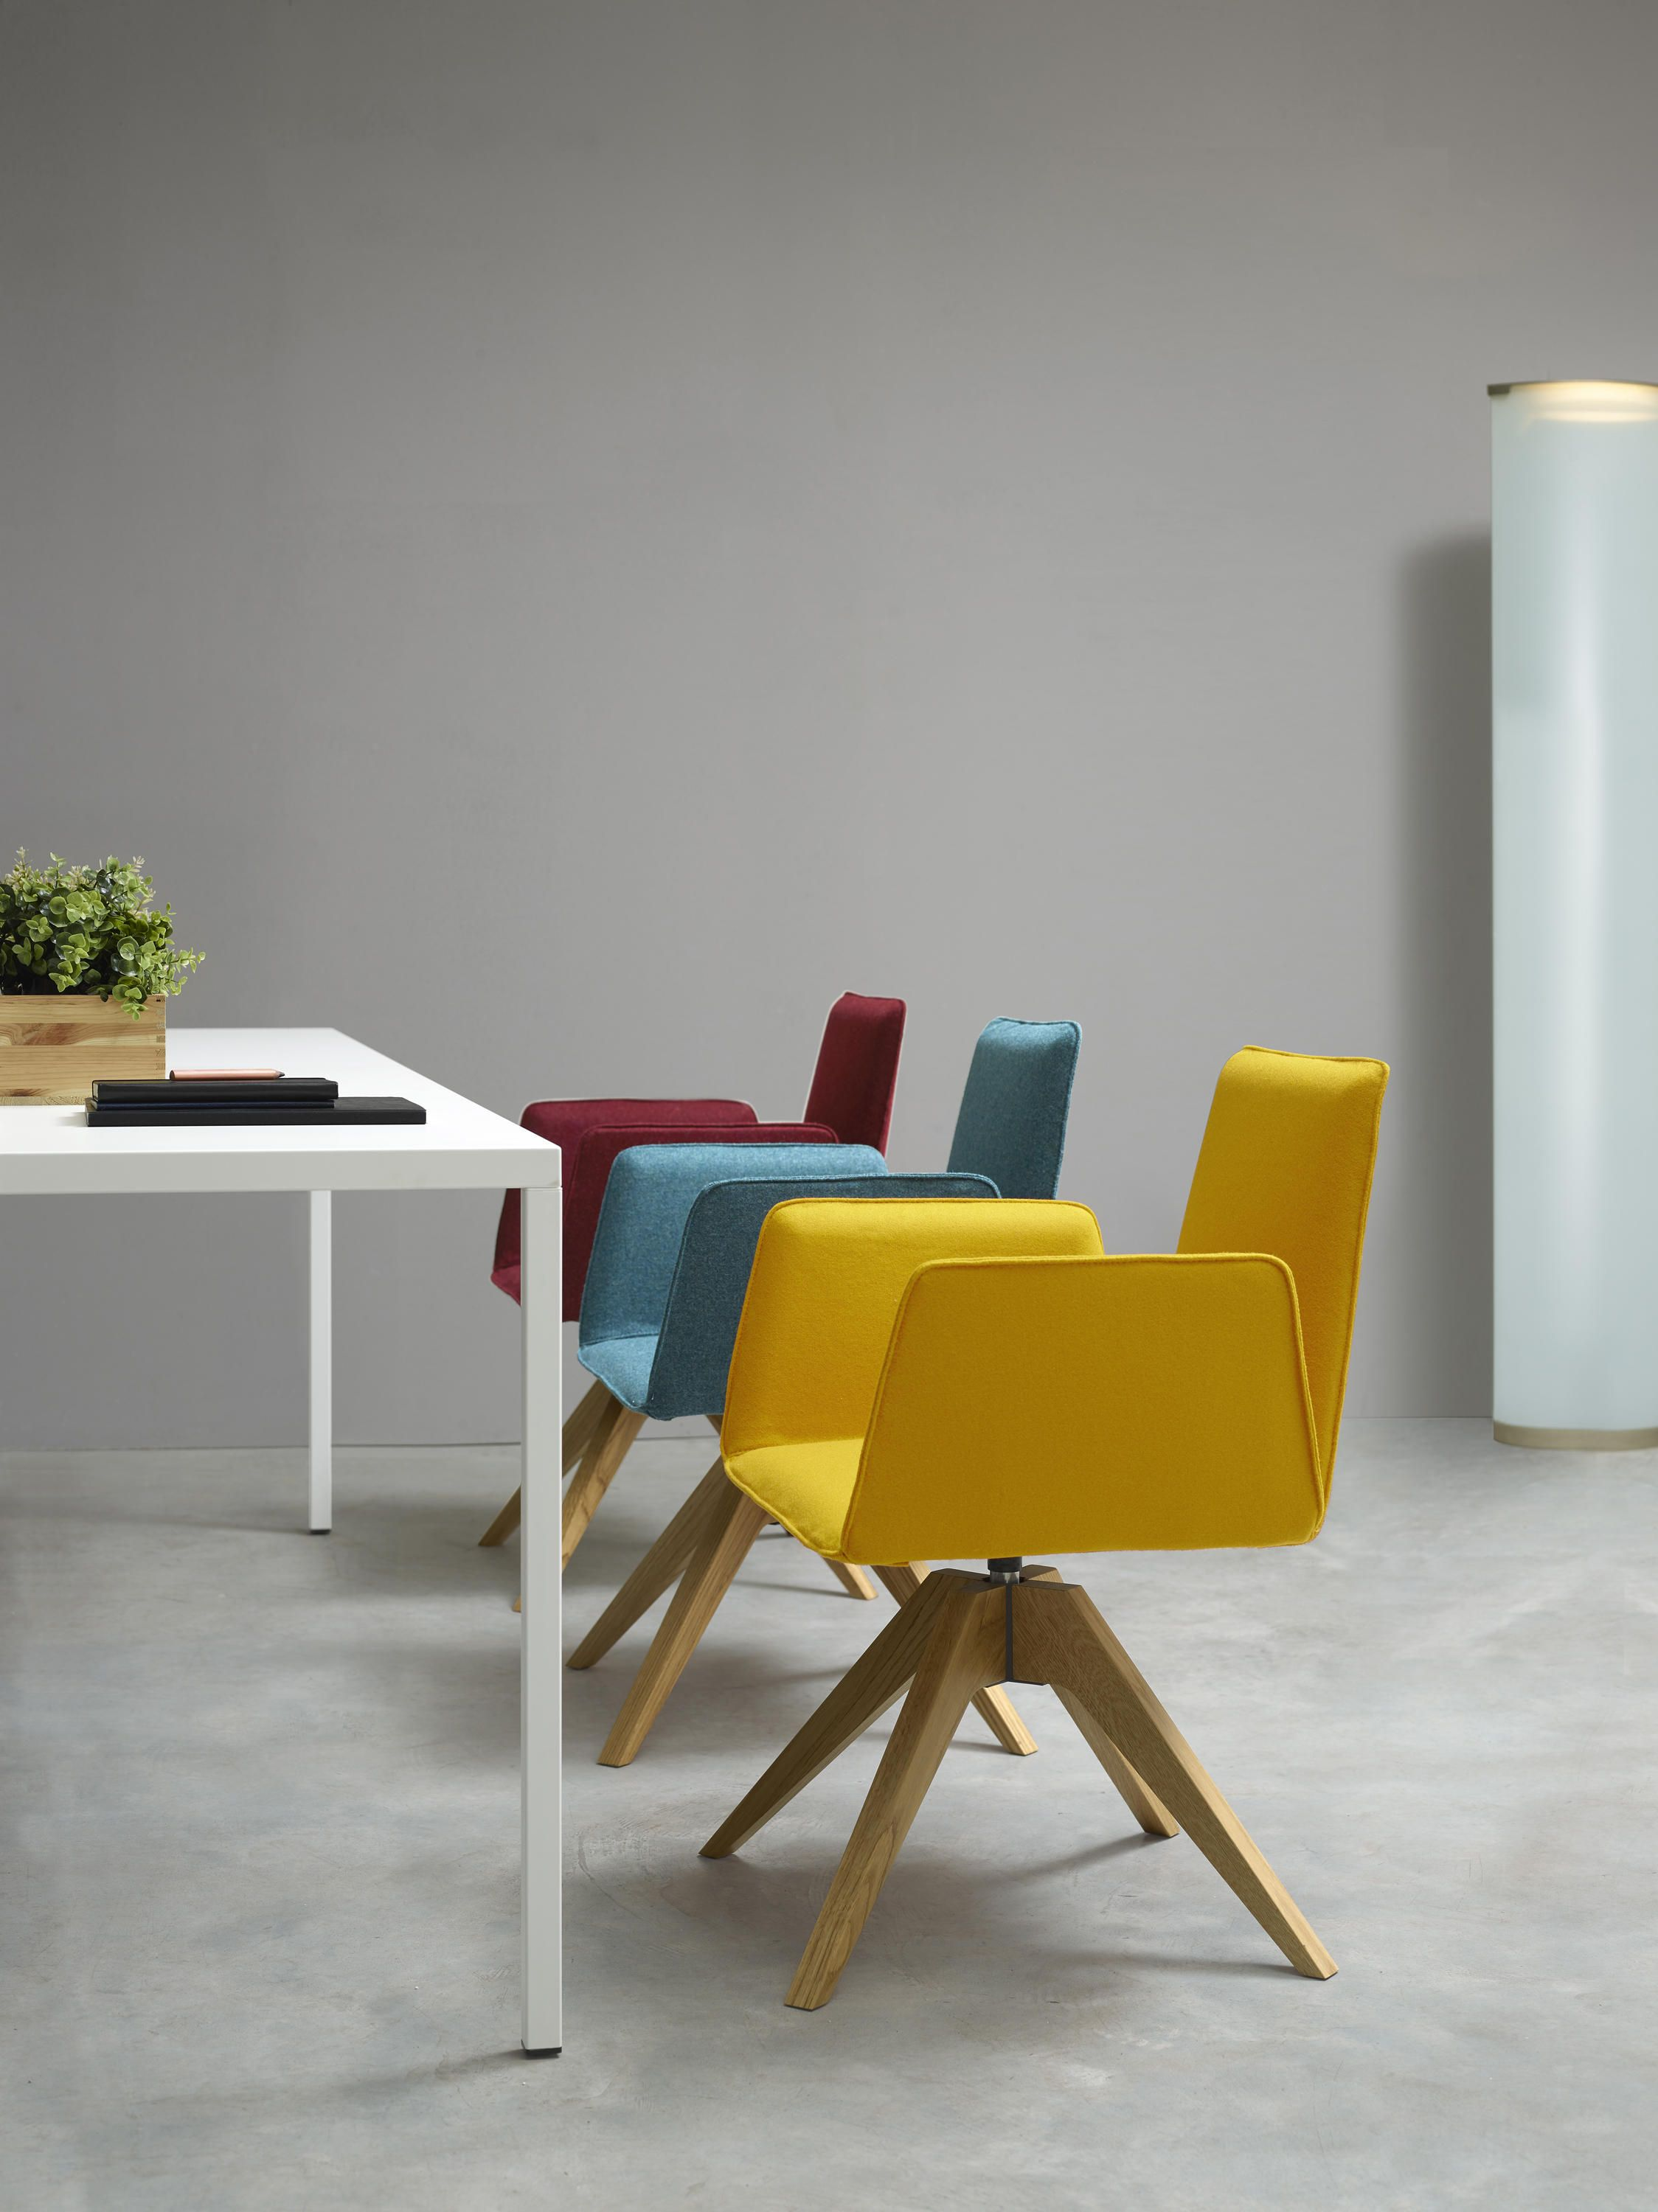 MINIMAX   Designer Restaurant Chairs From Quinti Sedute ✓ All Information ✓  High Resolution Images ✓ CADs ✓ Catalogues ✓ Contact Information ✓.